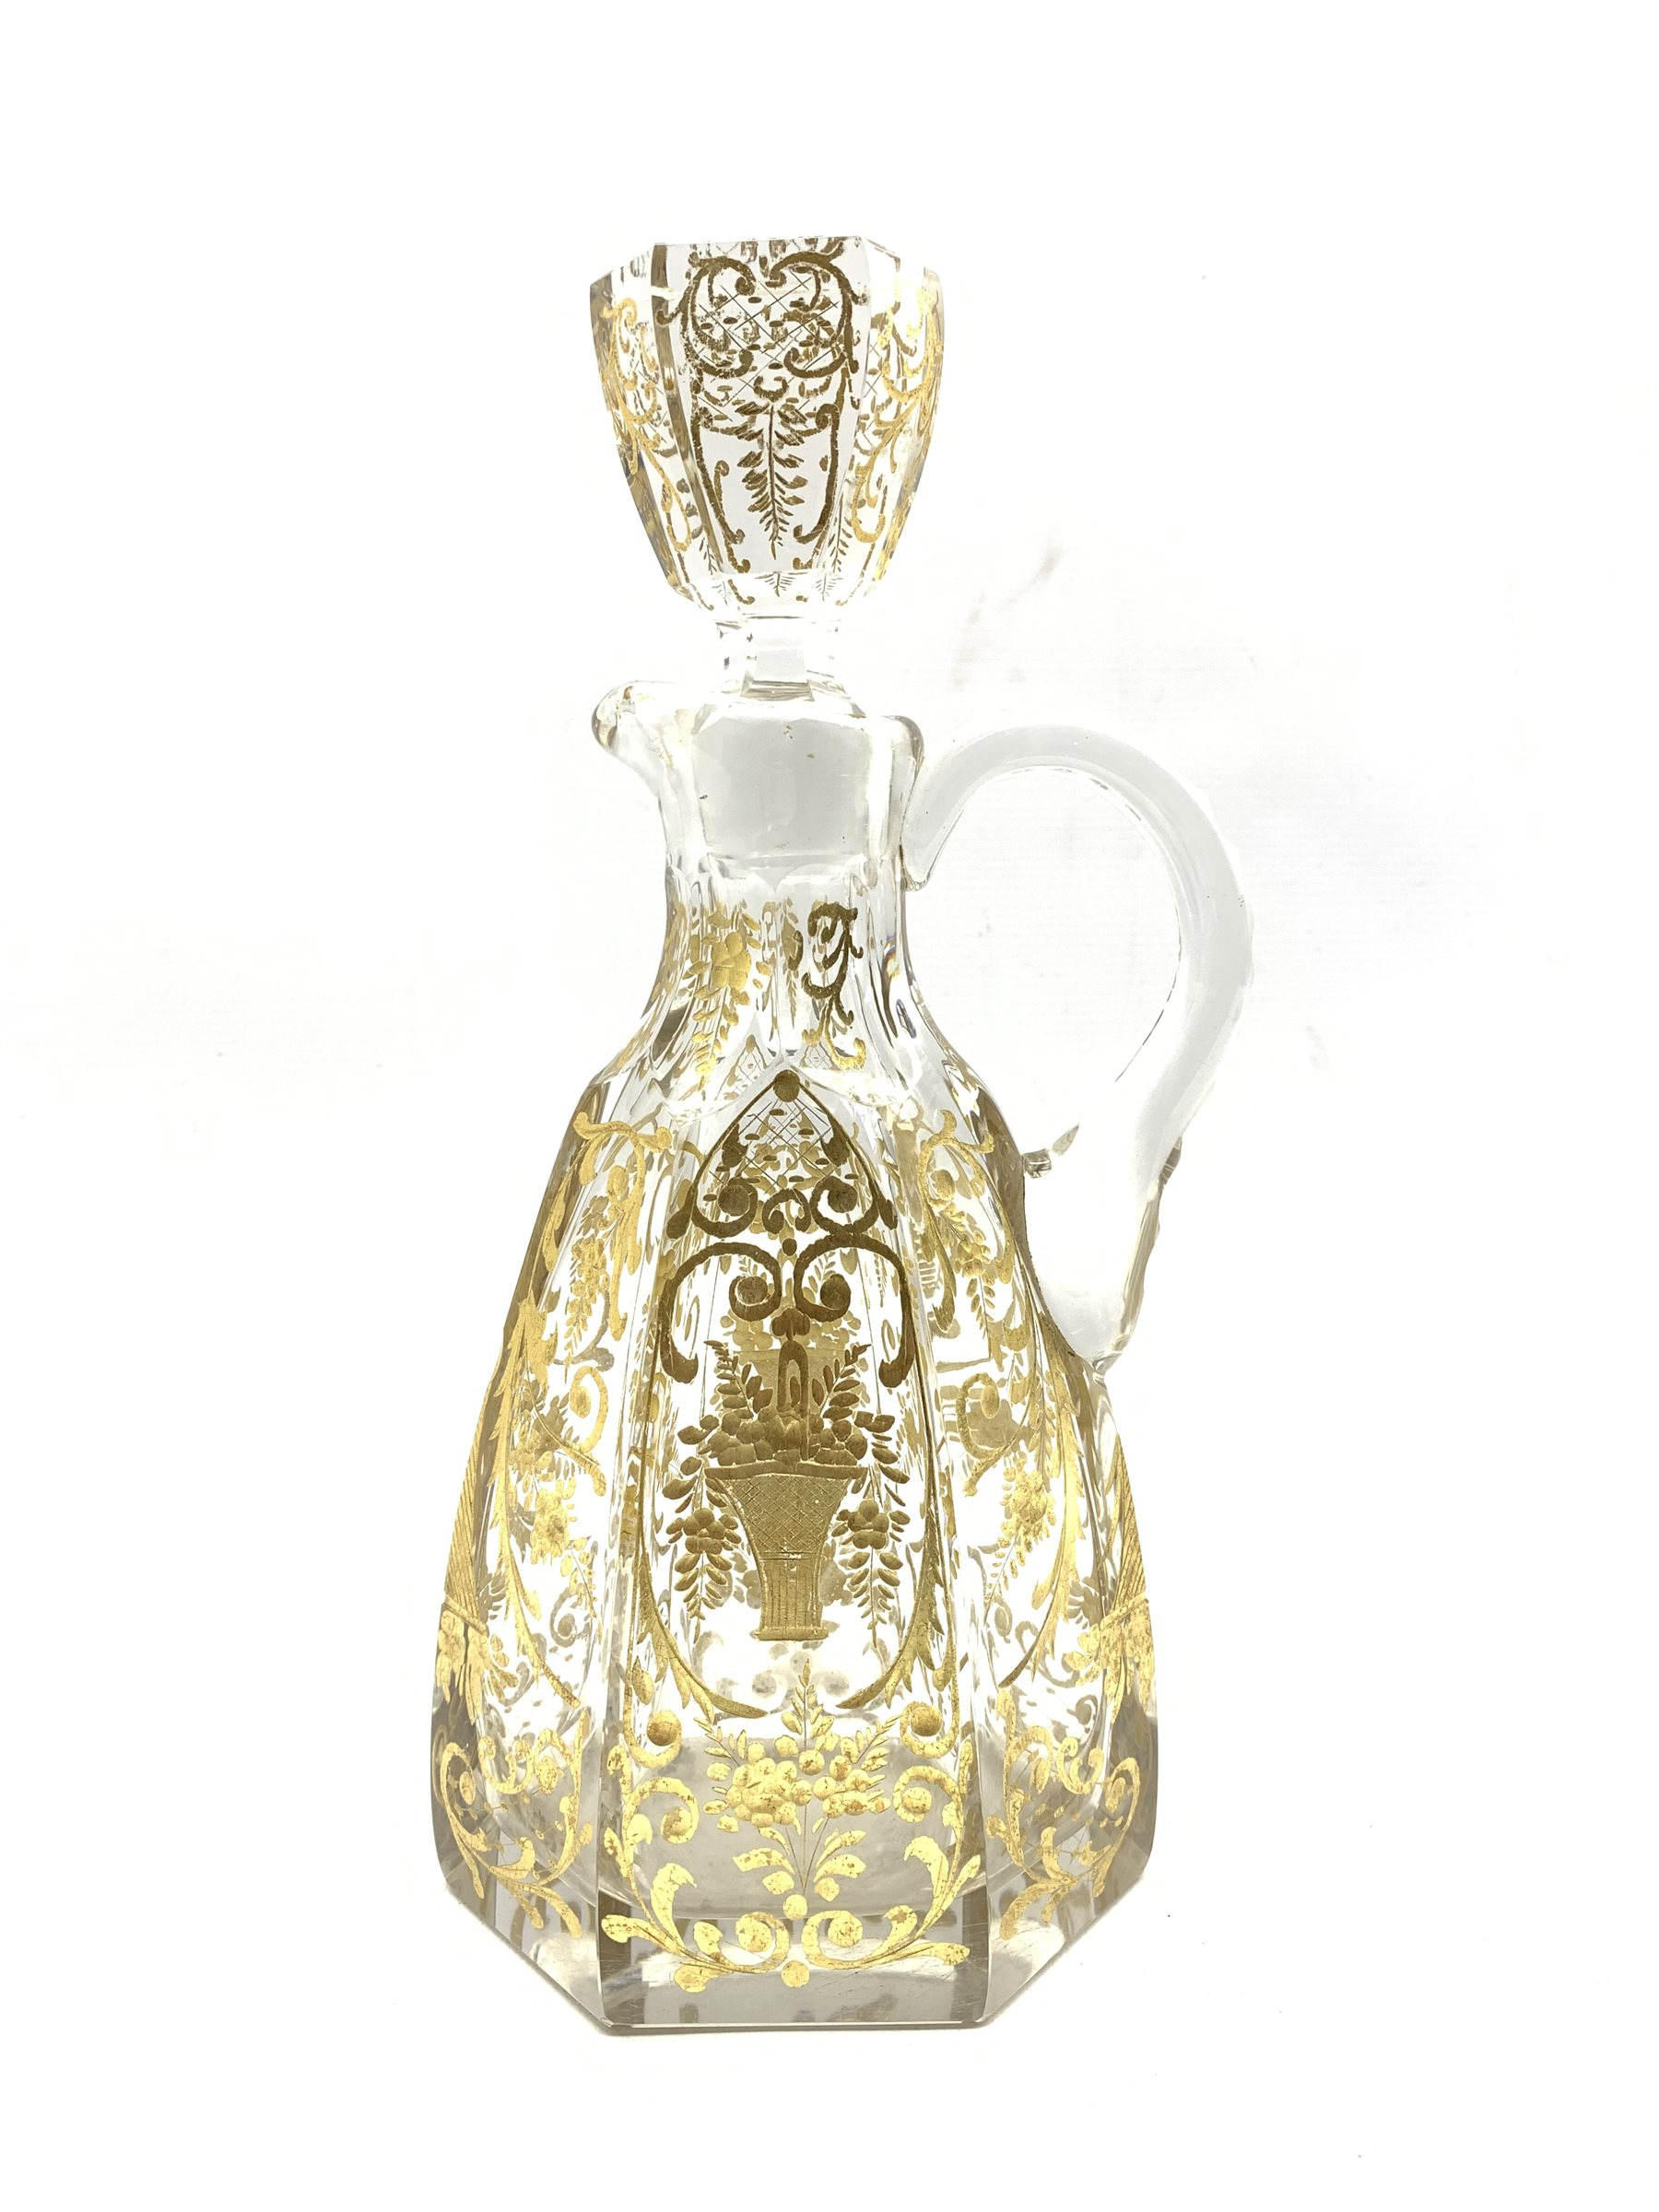 Early 20th century French glass claret jug of hexagonal design incised and gilded with trailing foli